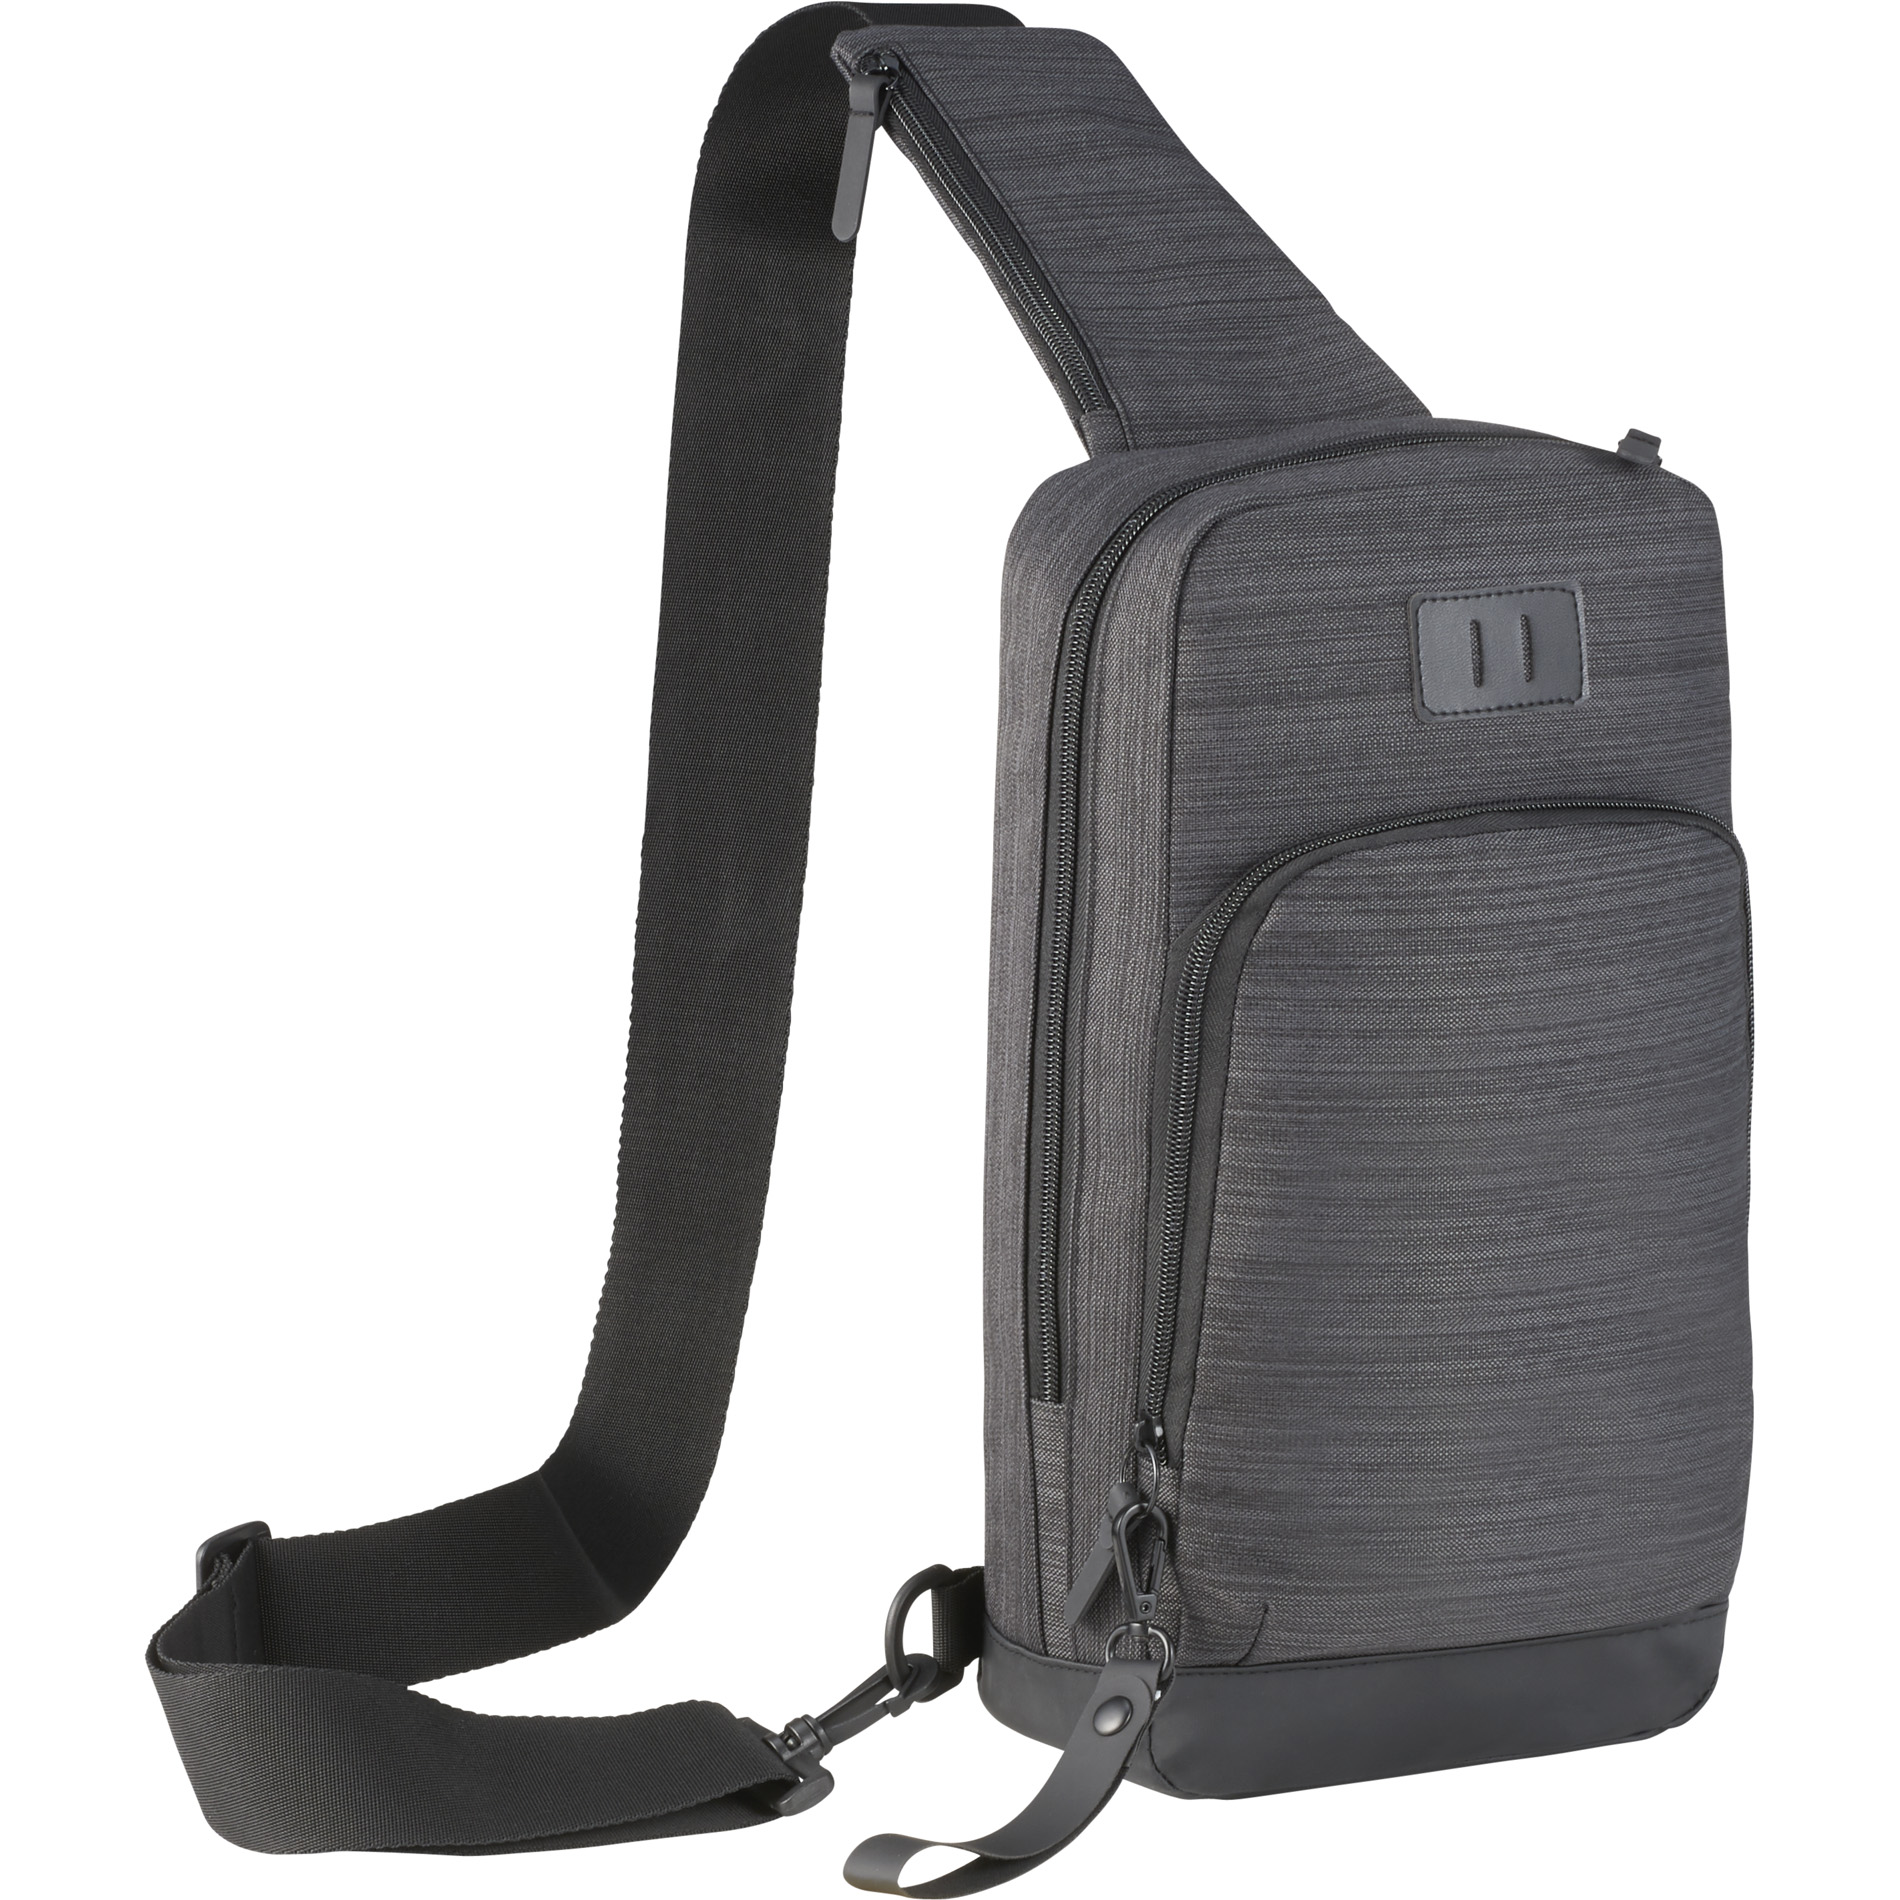 LEEDS NBN 3950-03 - Whitby Sling with USB Port